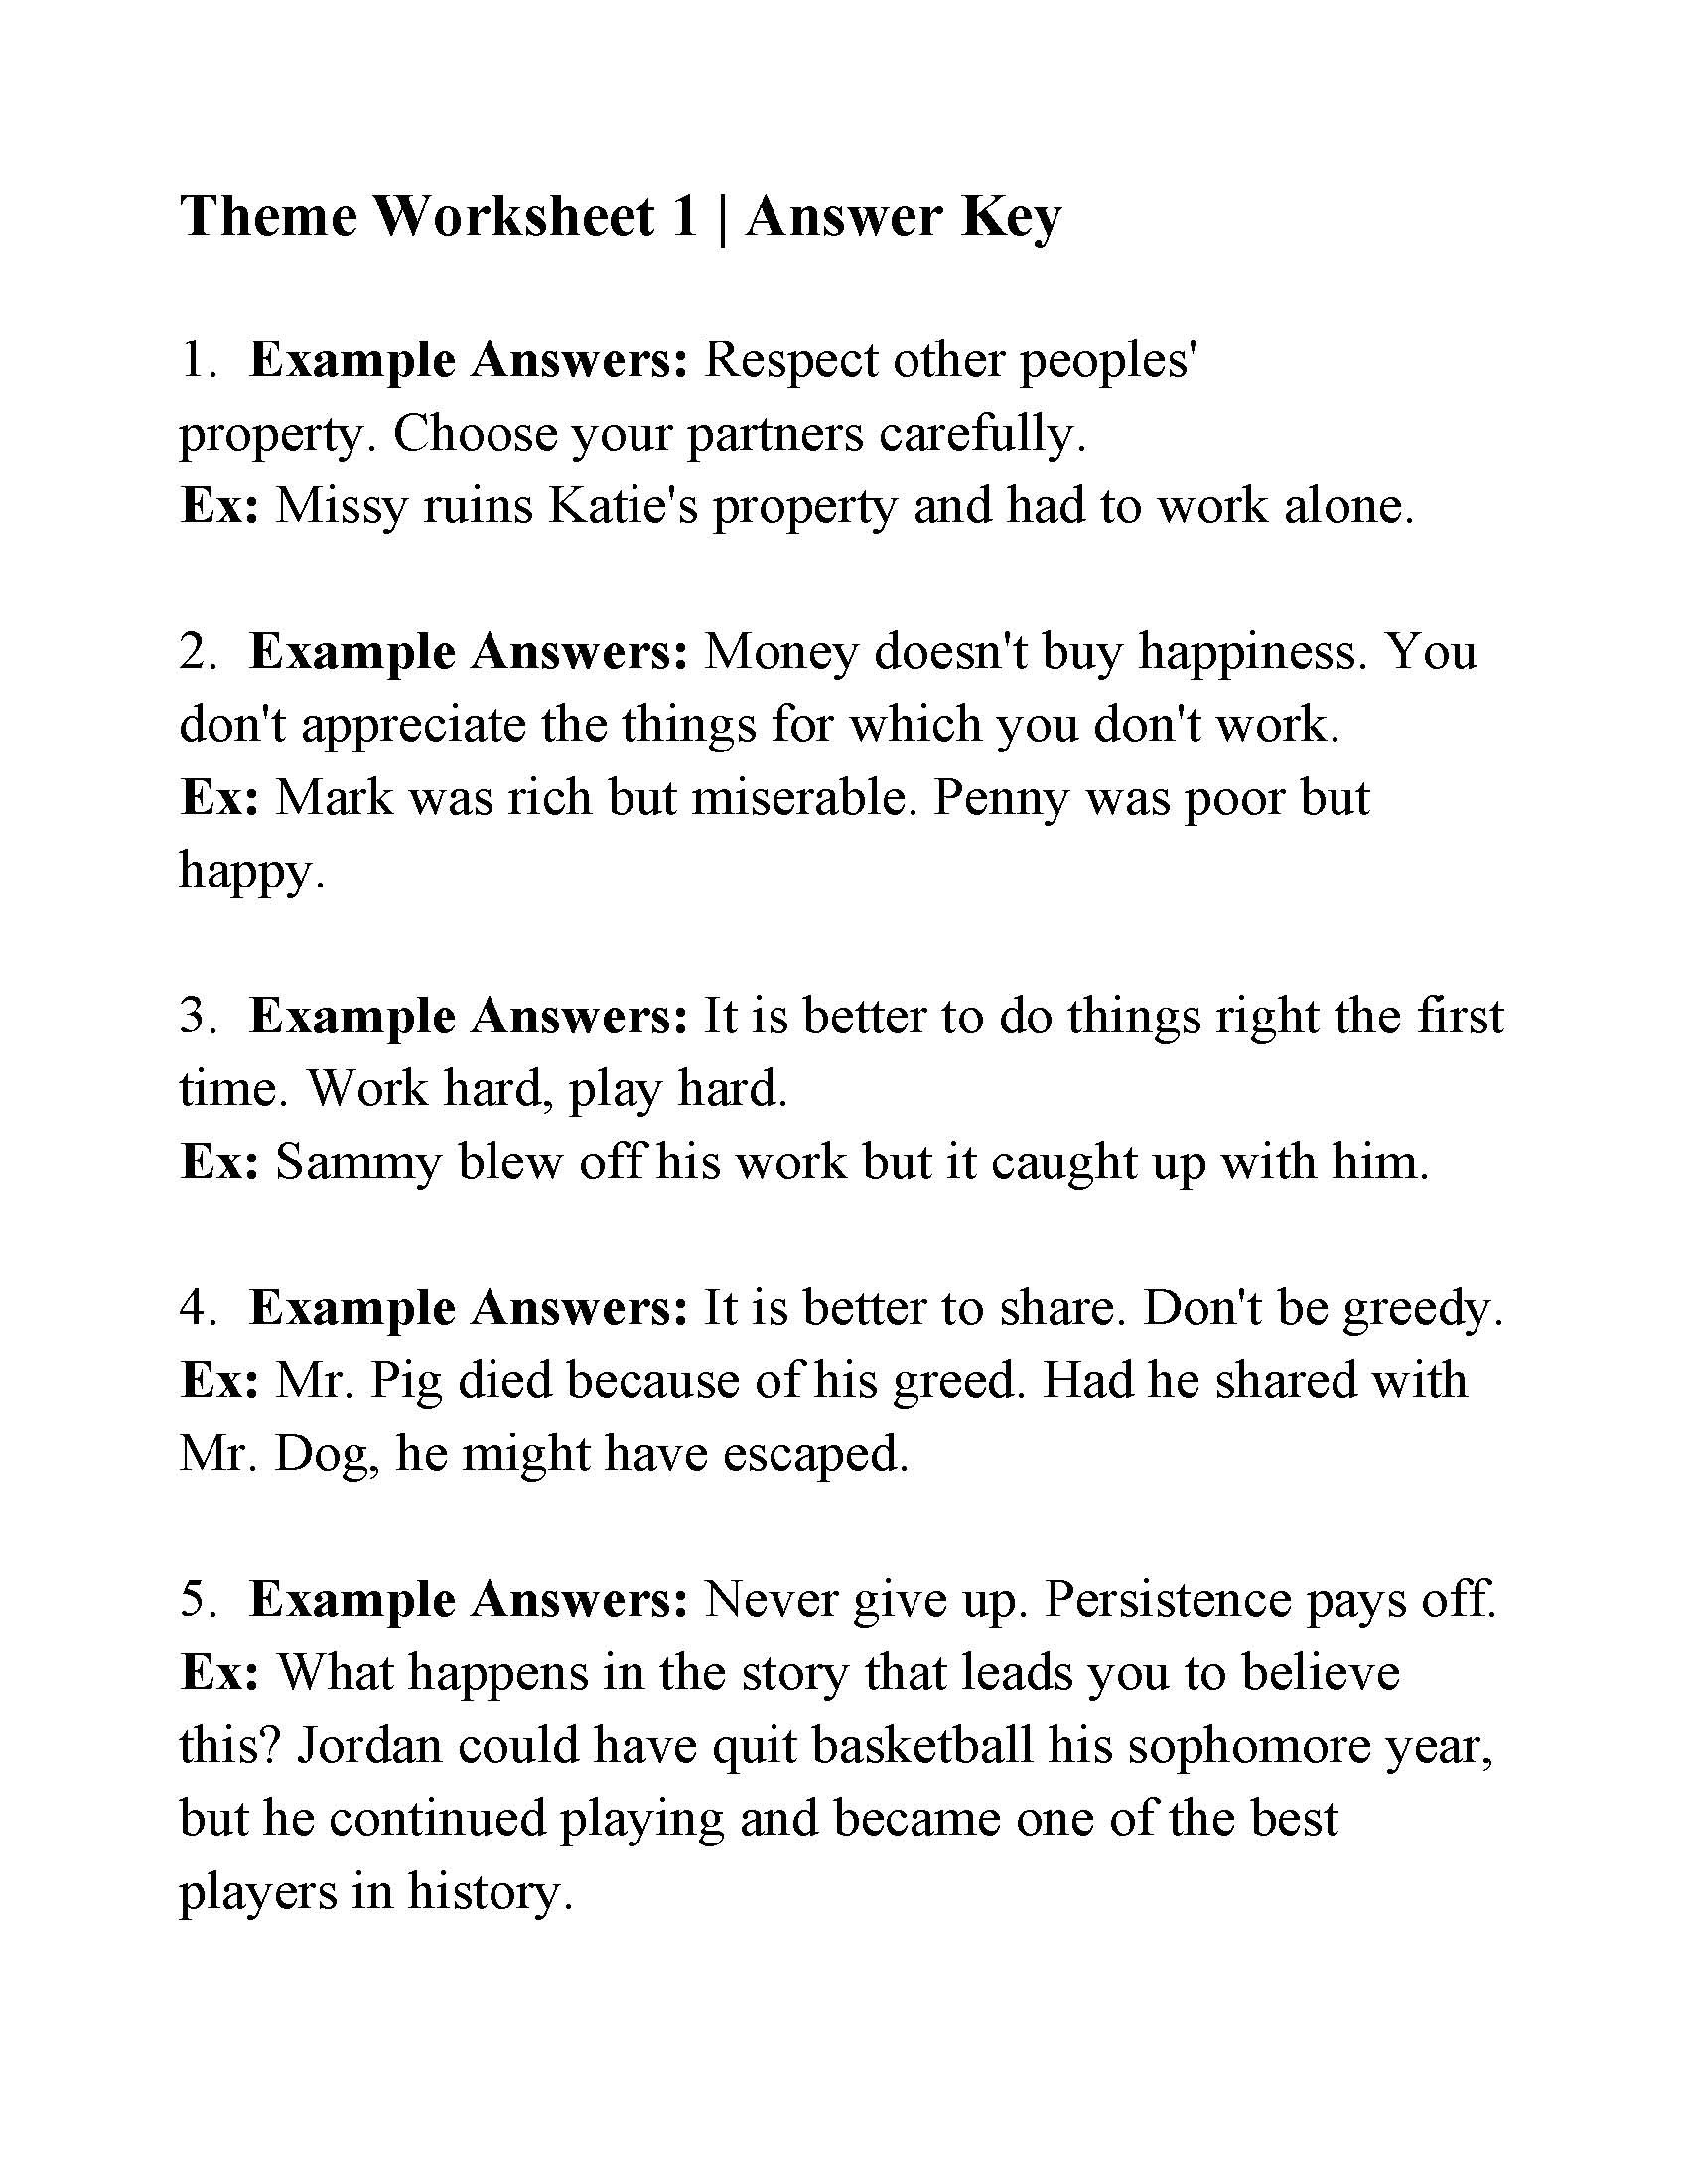 Theme Worksheets 5th Grade theme Worksheet 1